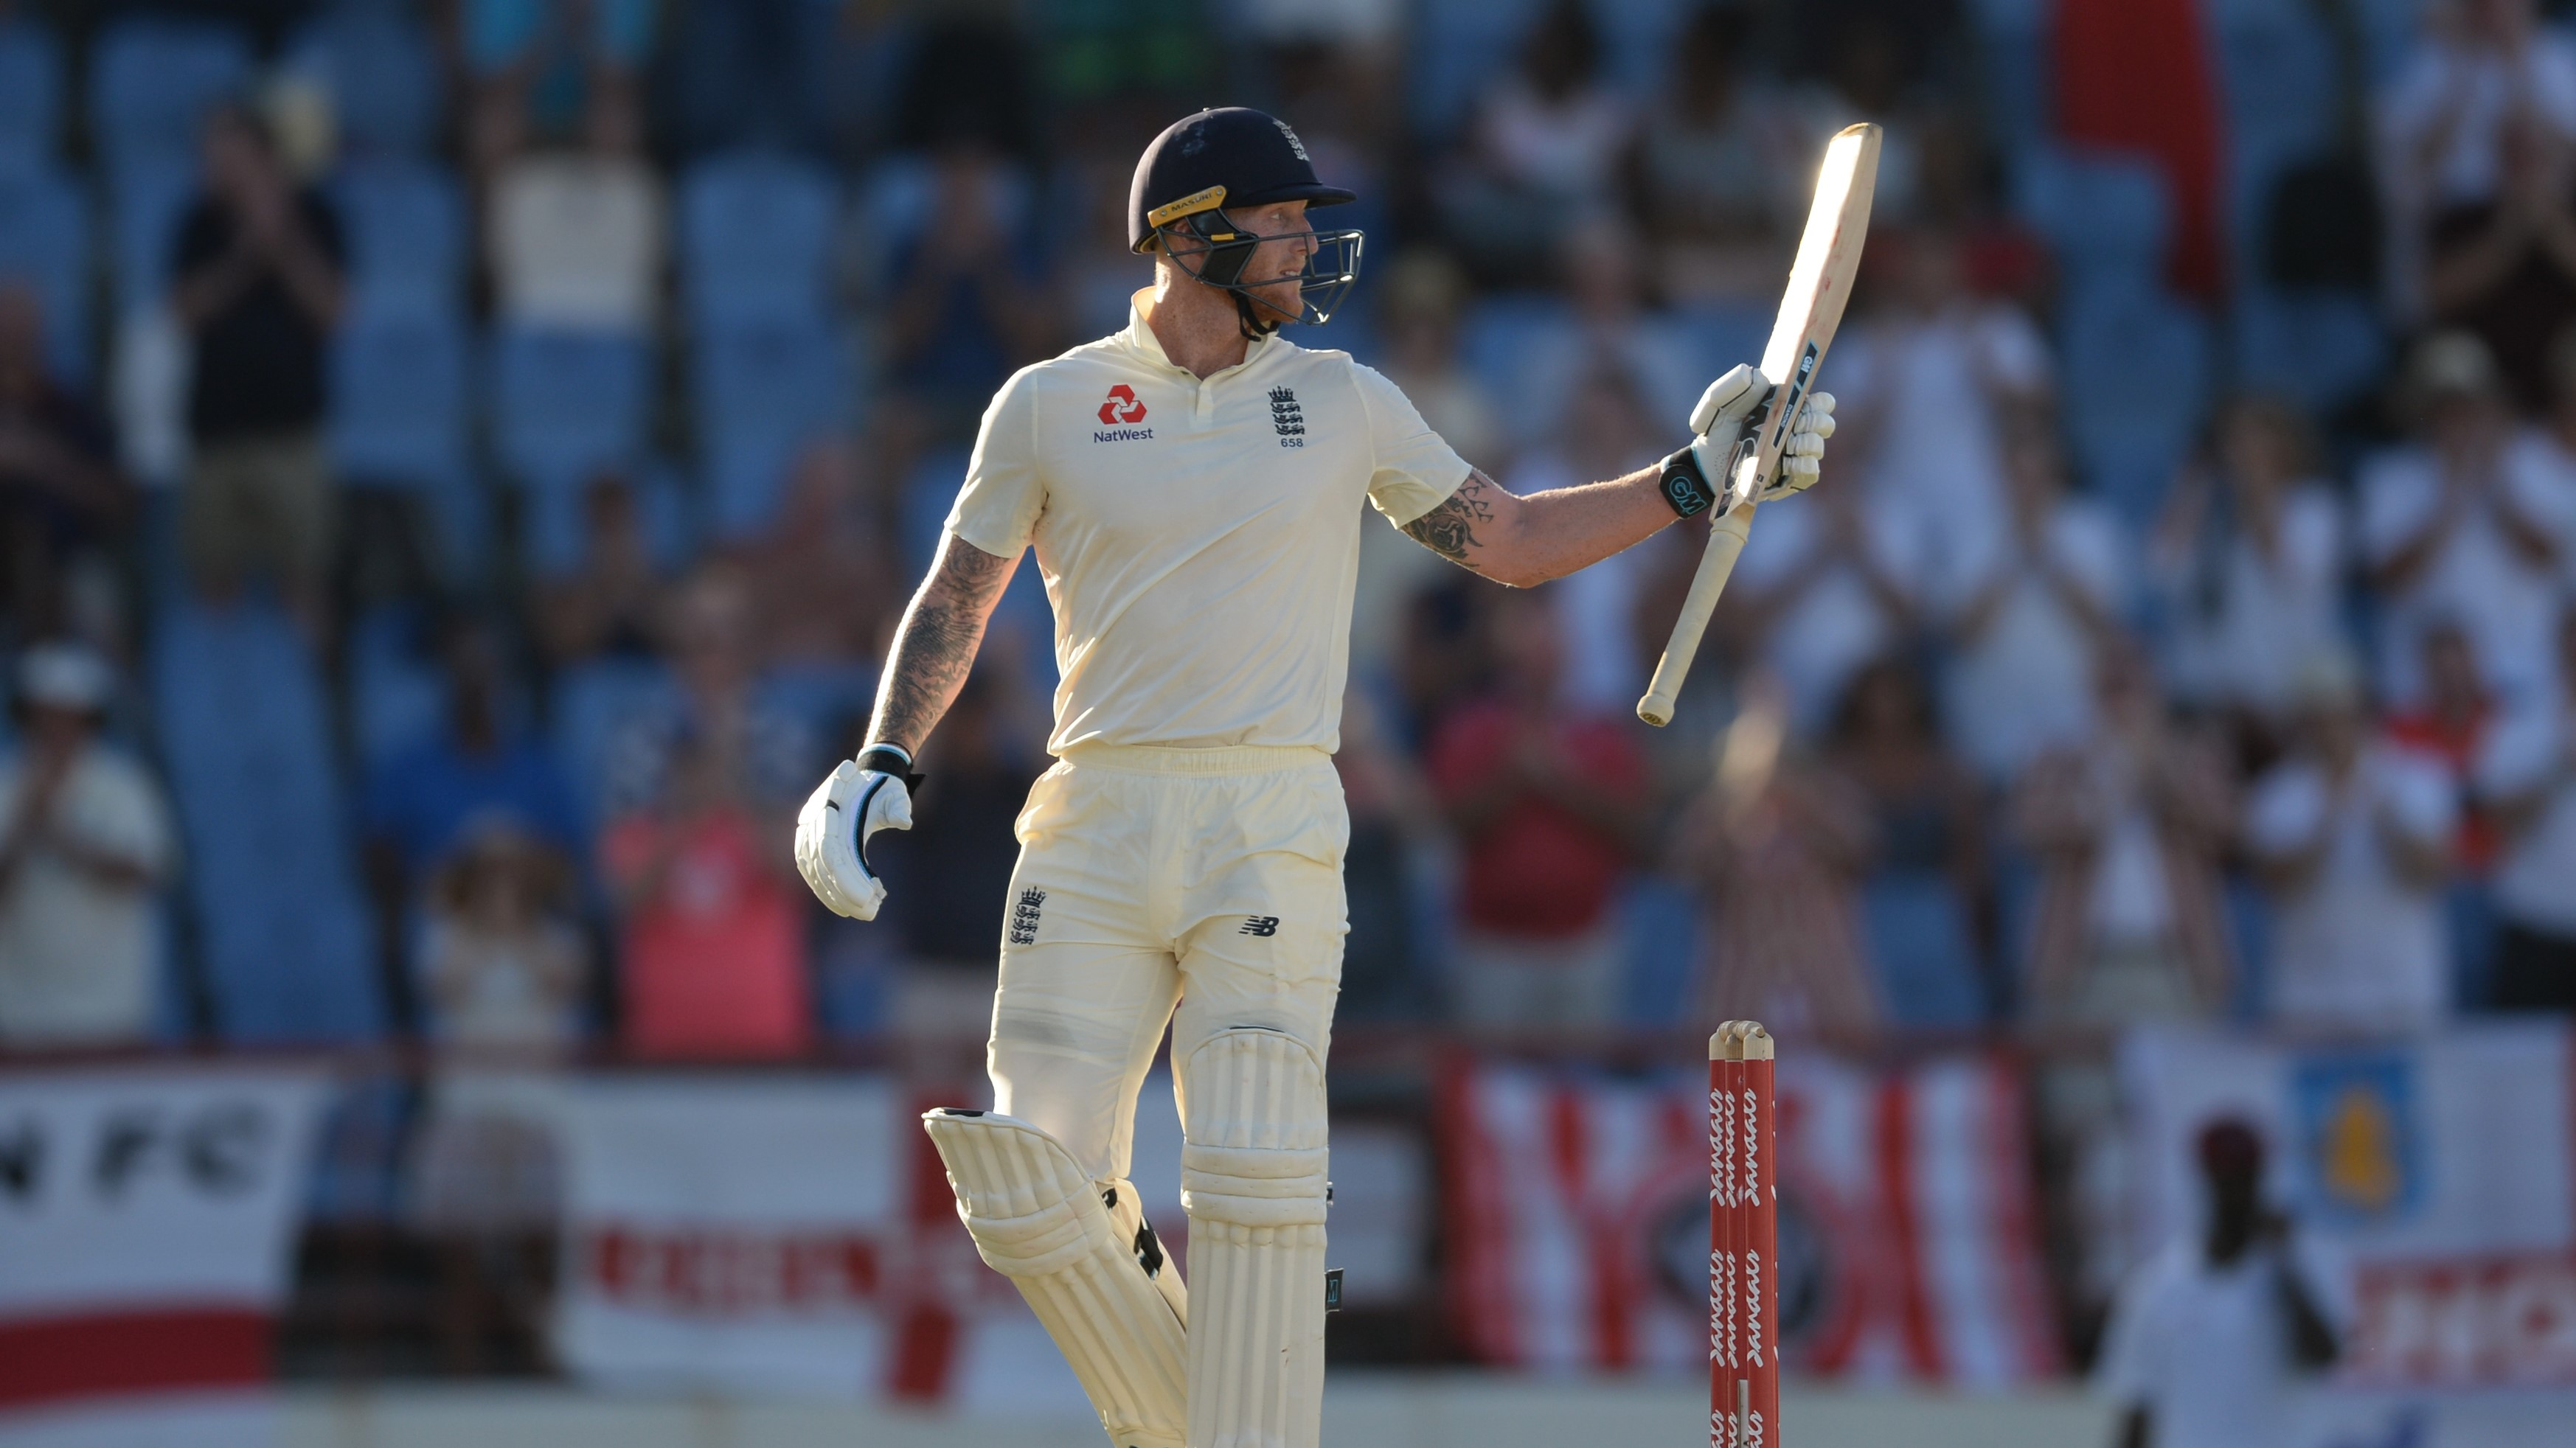 Lord's memories drive Ben Stokes at St Lucia